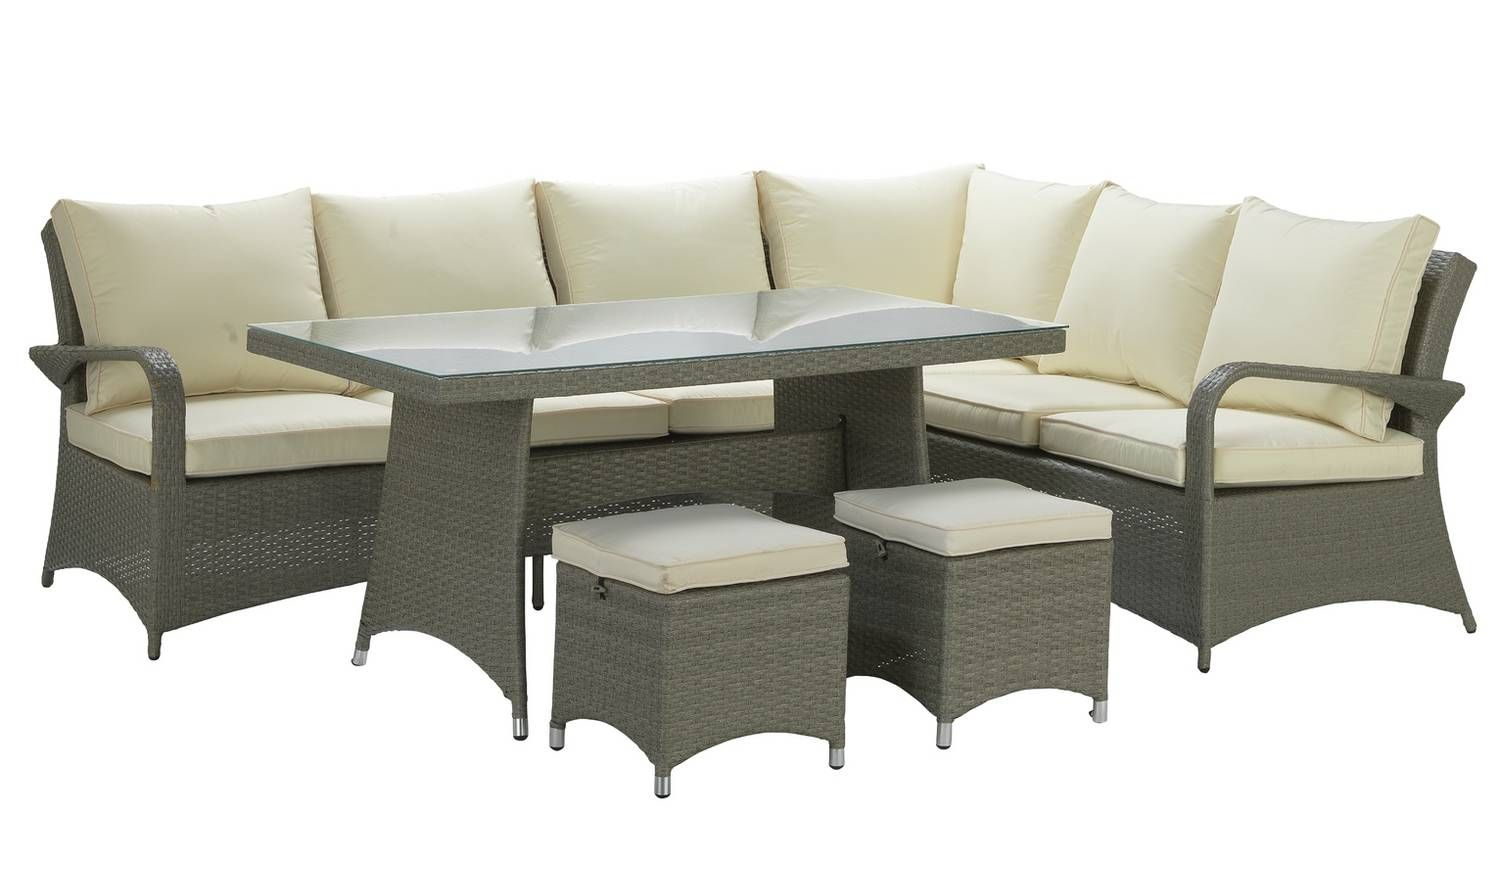 Buy Argos Home Seychelles Rattan Effect Corner Dining Set Grey Garden Table And Chair Sets Argos Corner Dining Set Garden Table And Chairs Argos Home